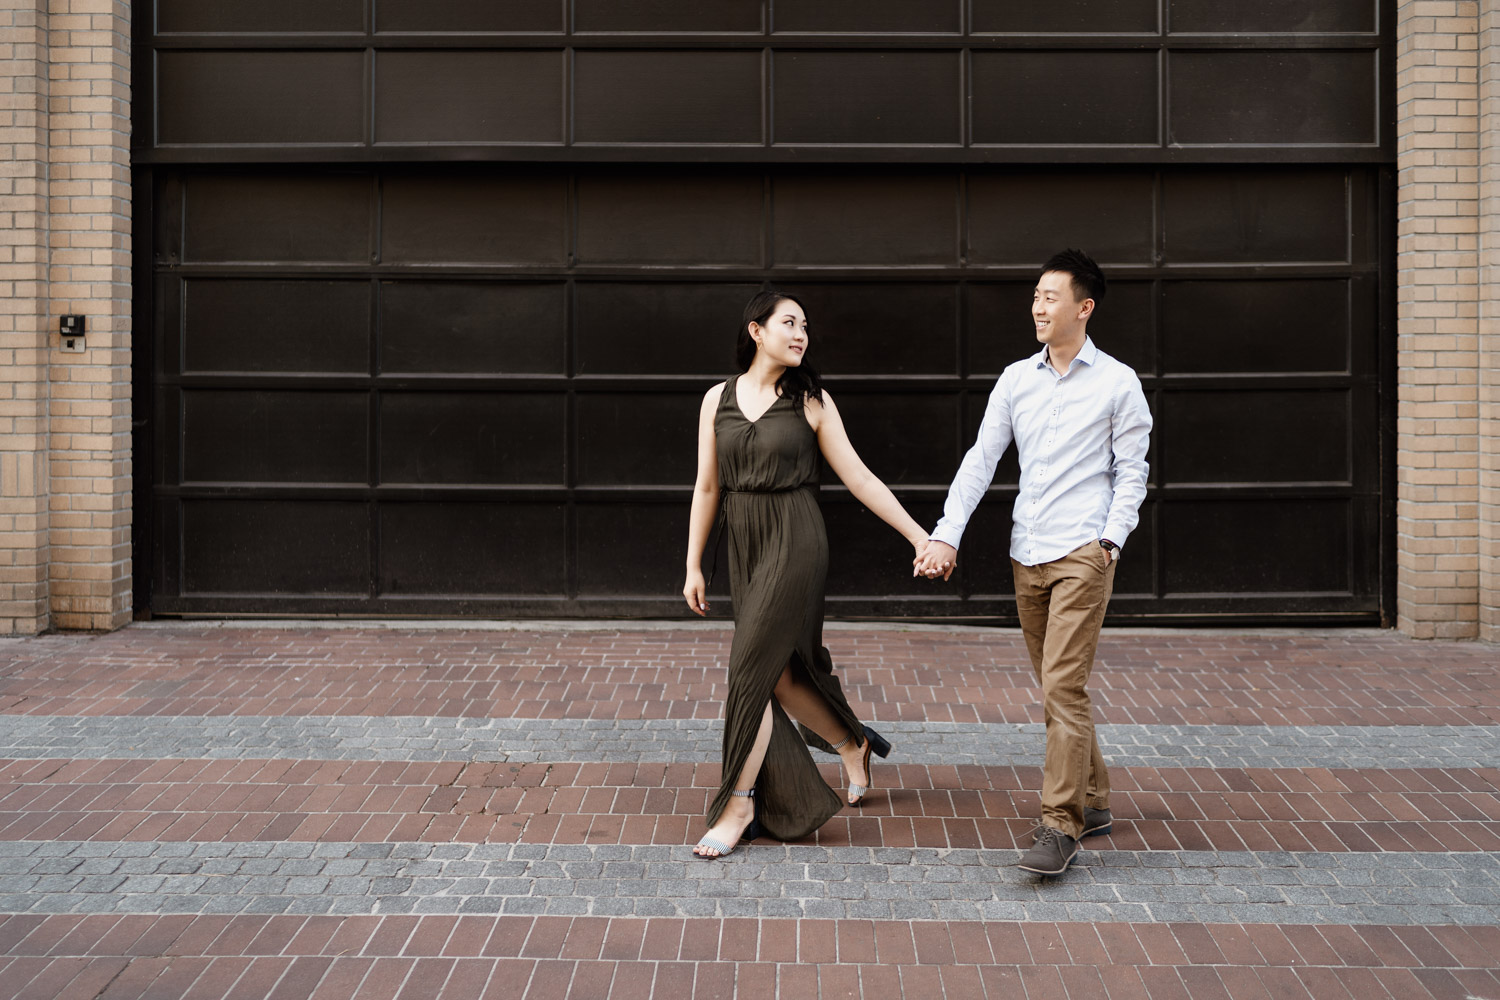 gastown engagement photography in vancouver bc during summer at sunset or golden hour